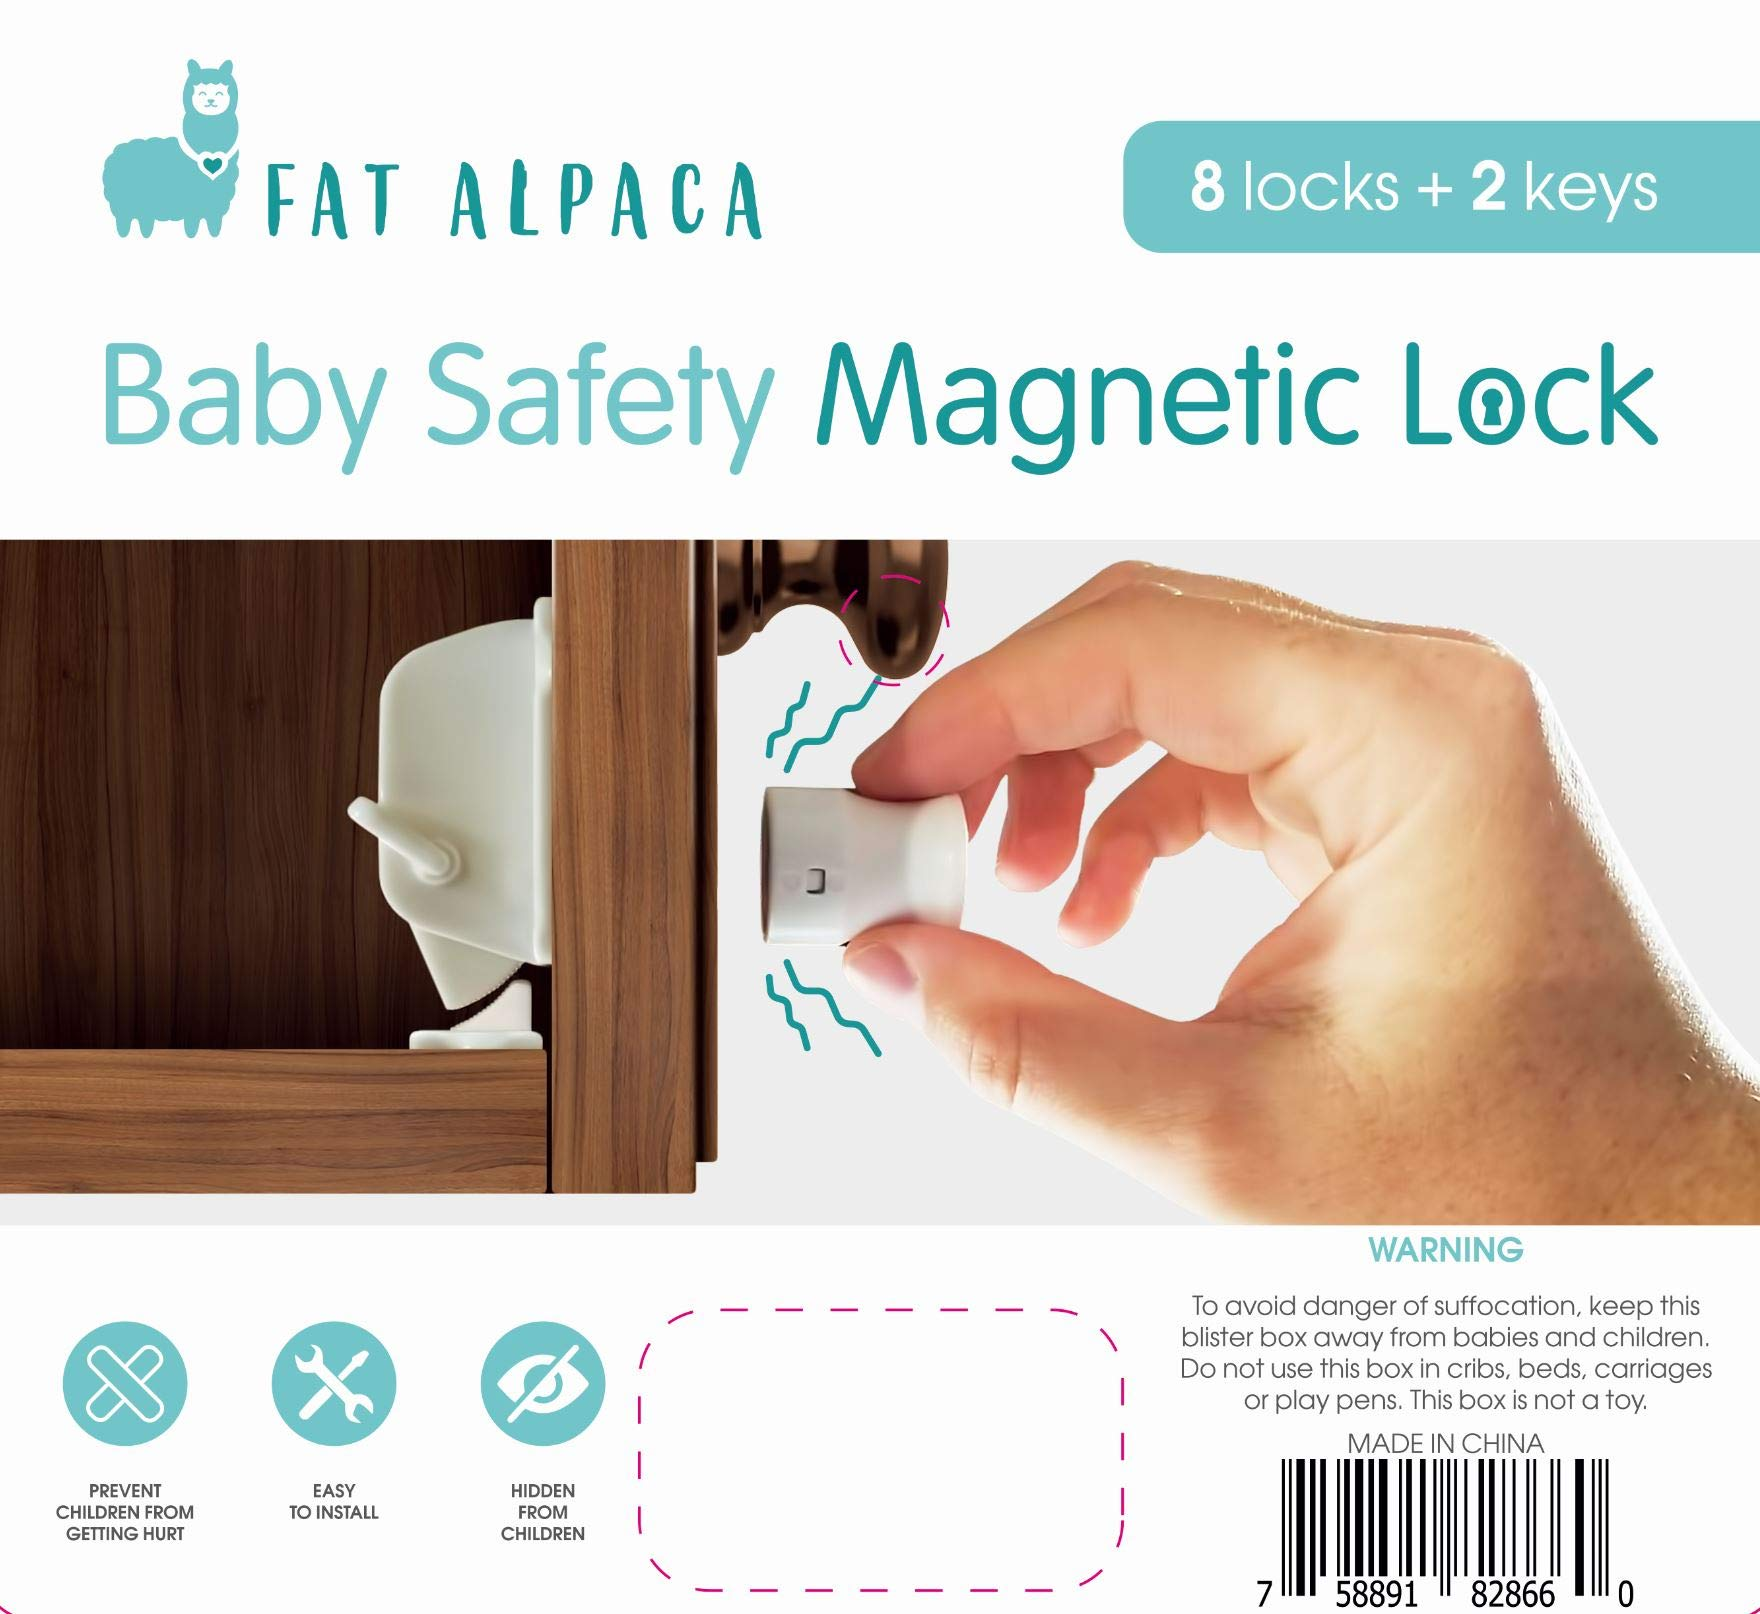 Large Magnetic Baby Safety Locks by Fat Alpaca - 8 Locks + 2 Keys - Kitchen and Bathroom Cabinet Door and Drawer Locks for Small Children and Toddlers - Strong Adhesive Tape and Installation Guide